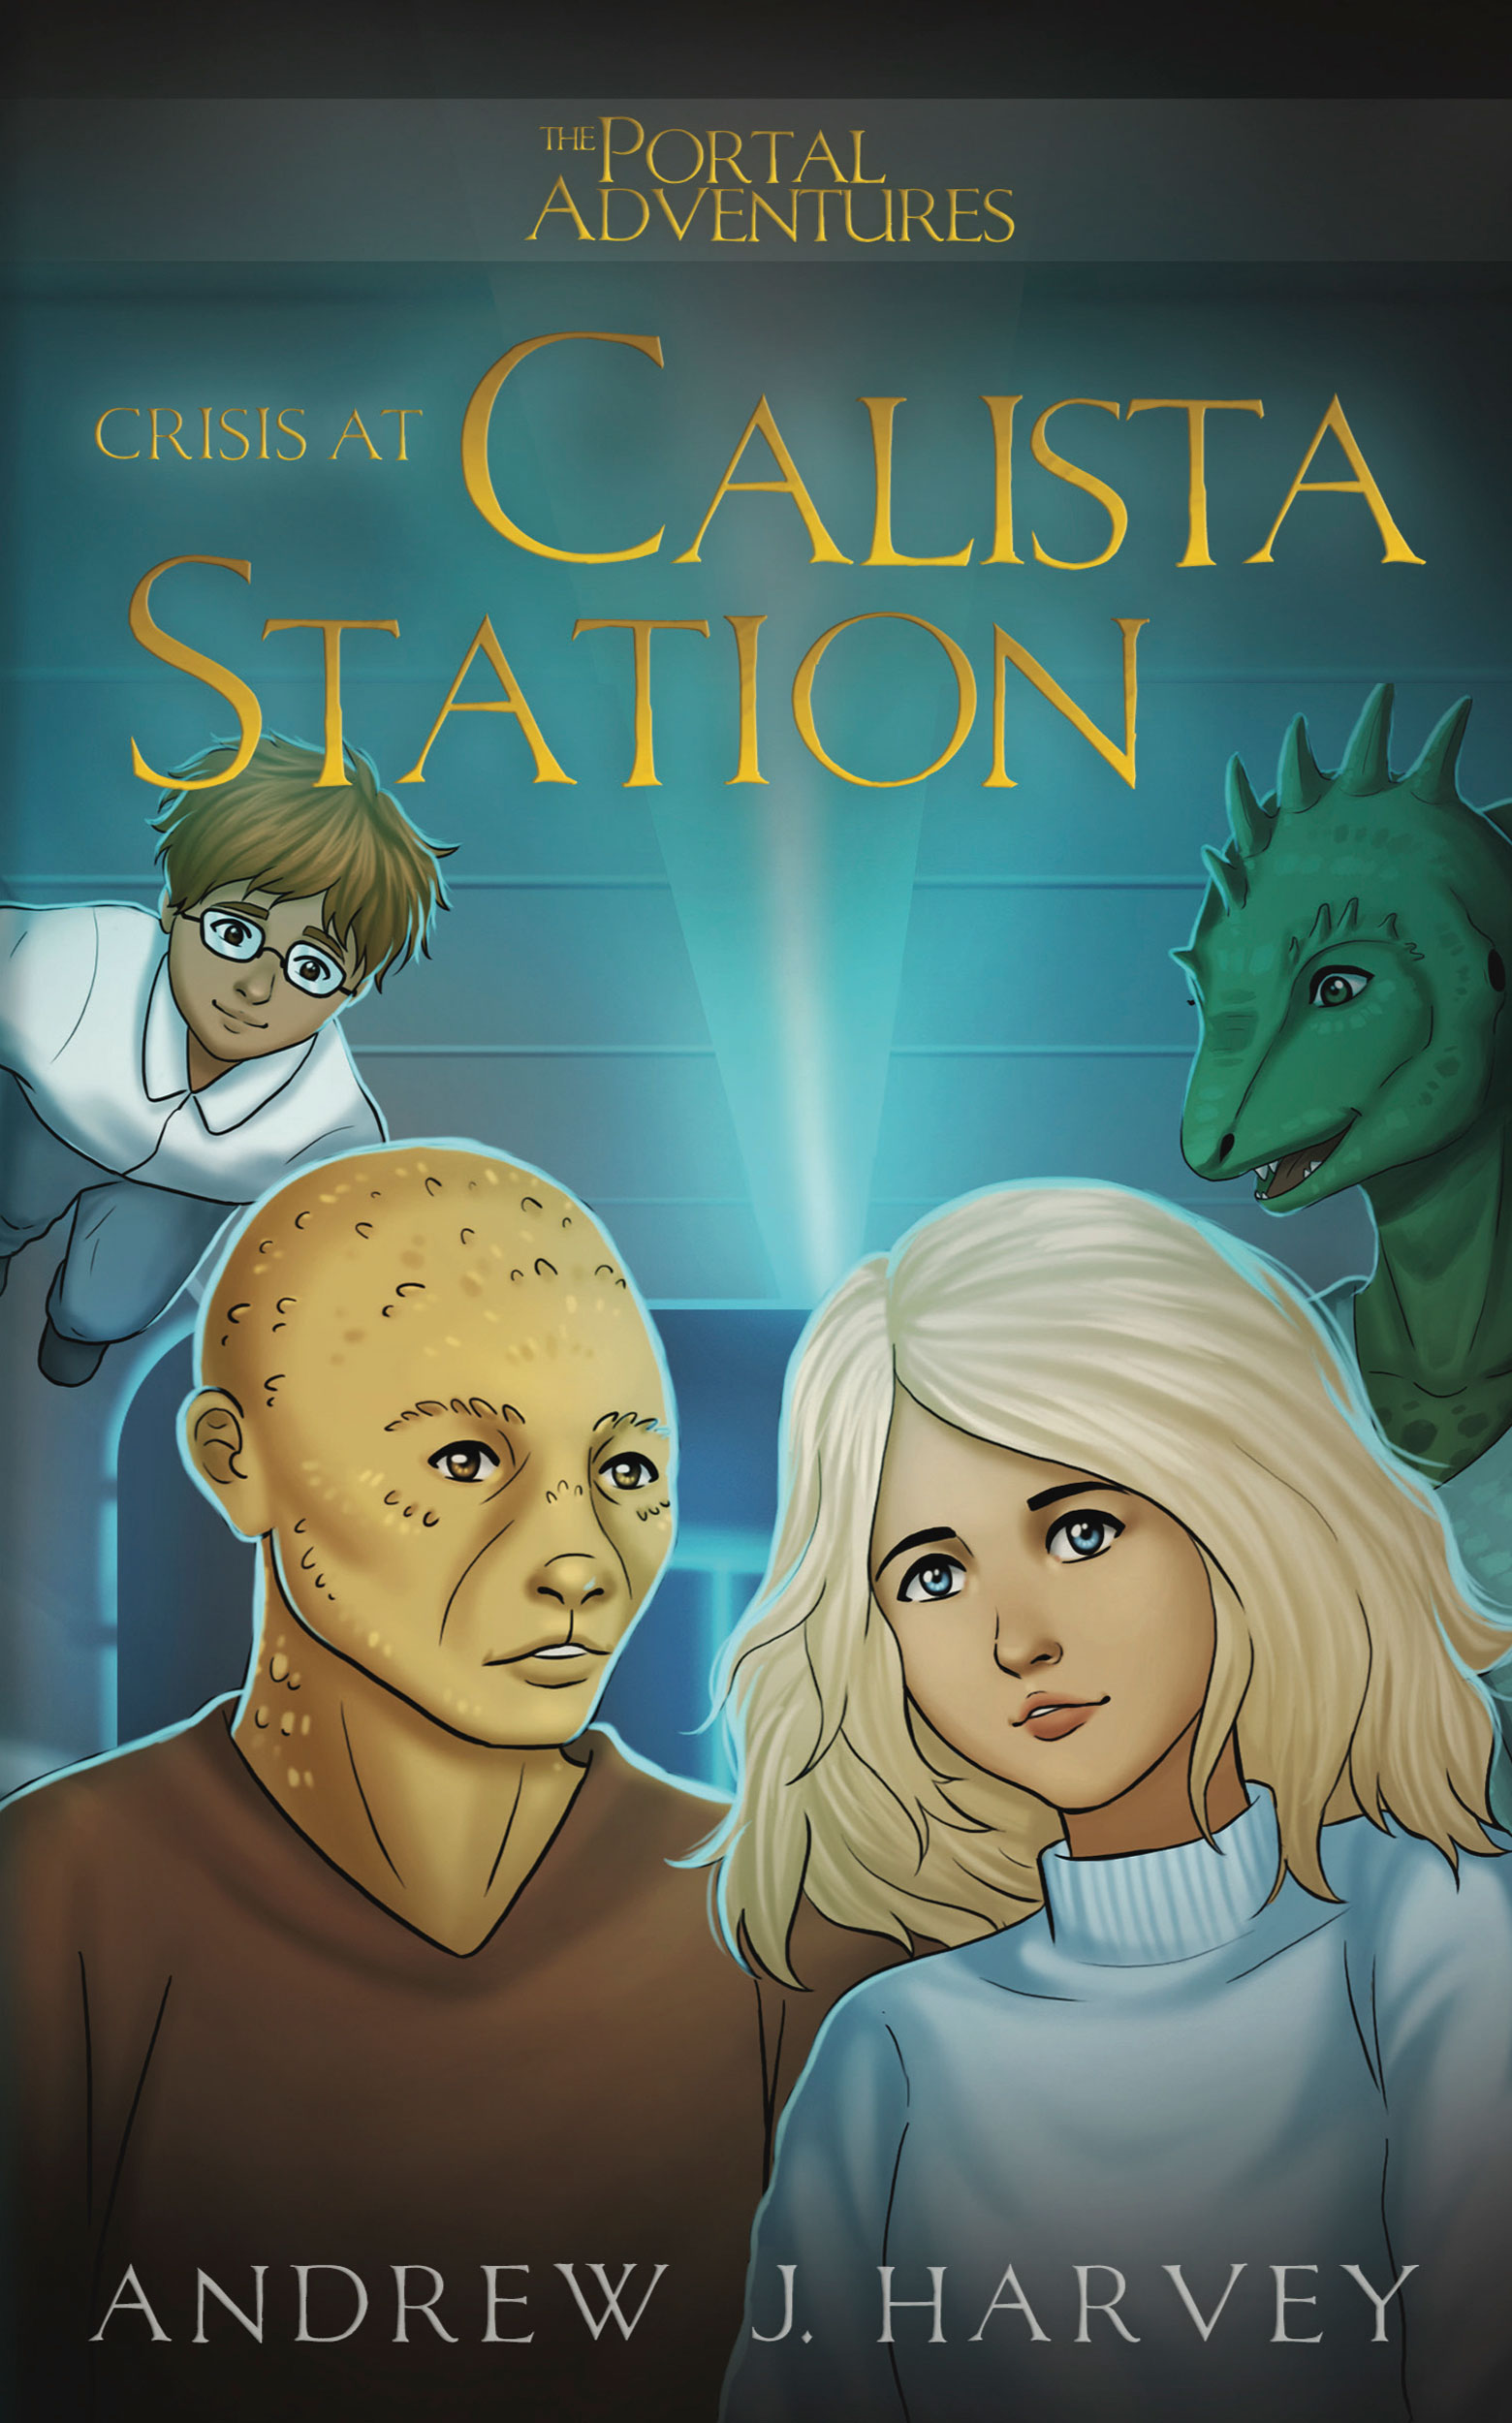 Cover of book showing Tania and Shr'un (with Mark and Windracer in the background)